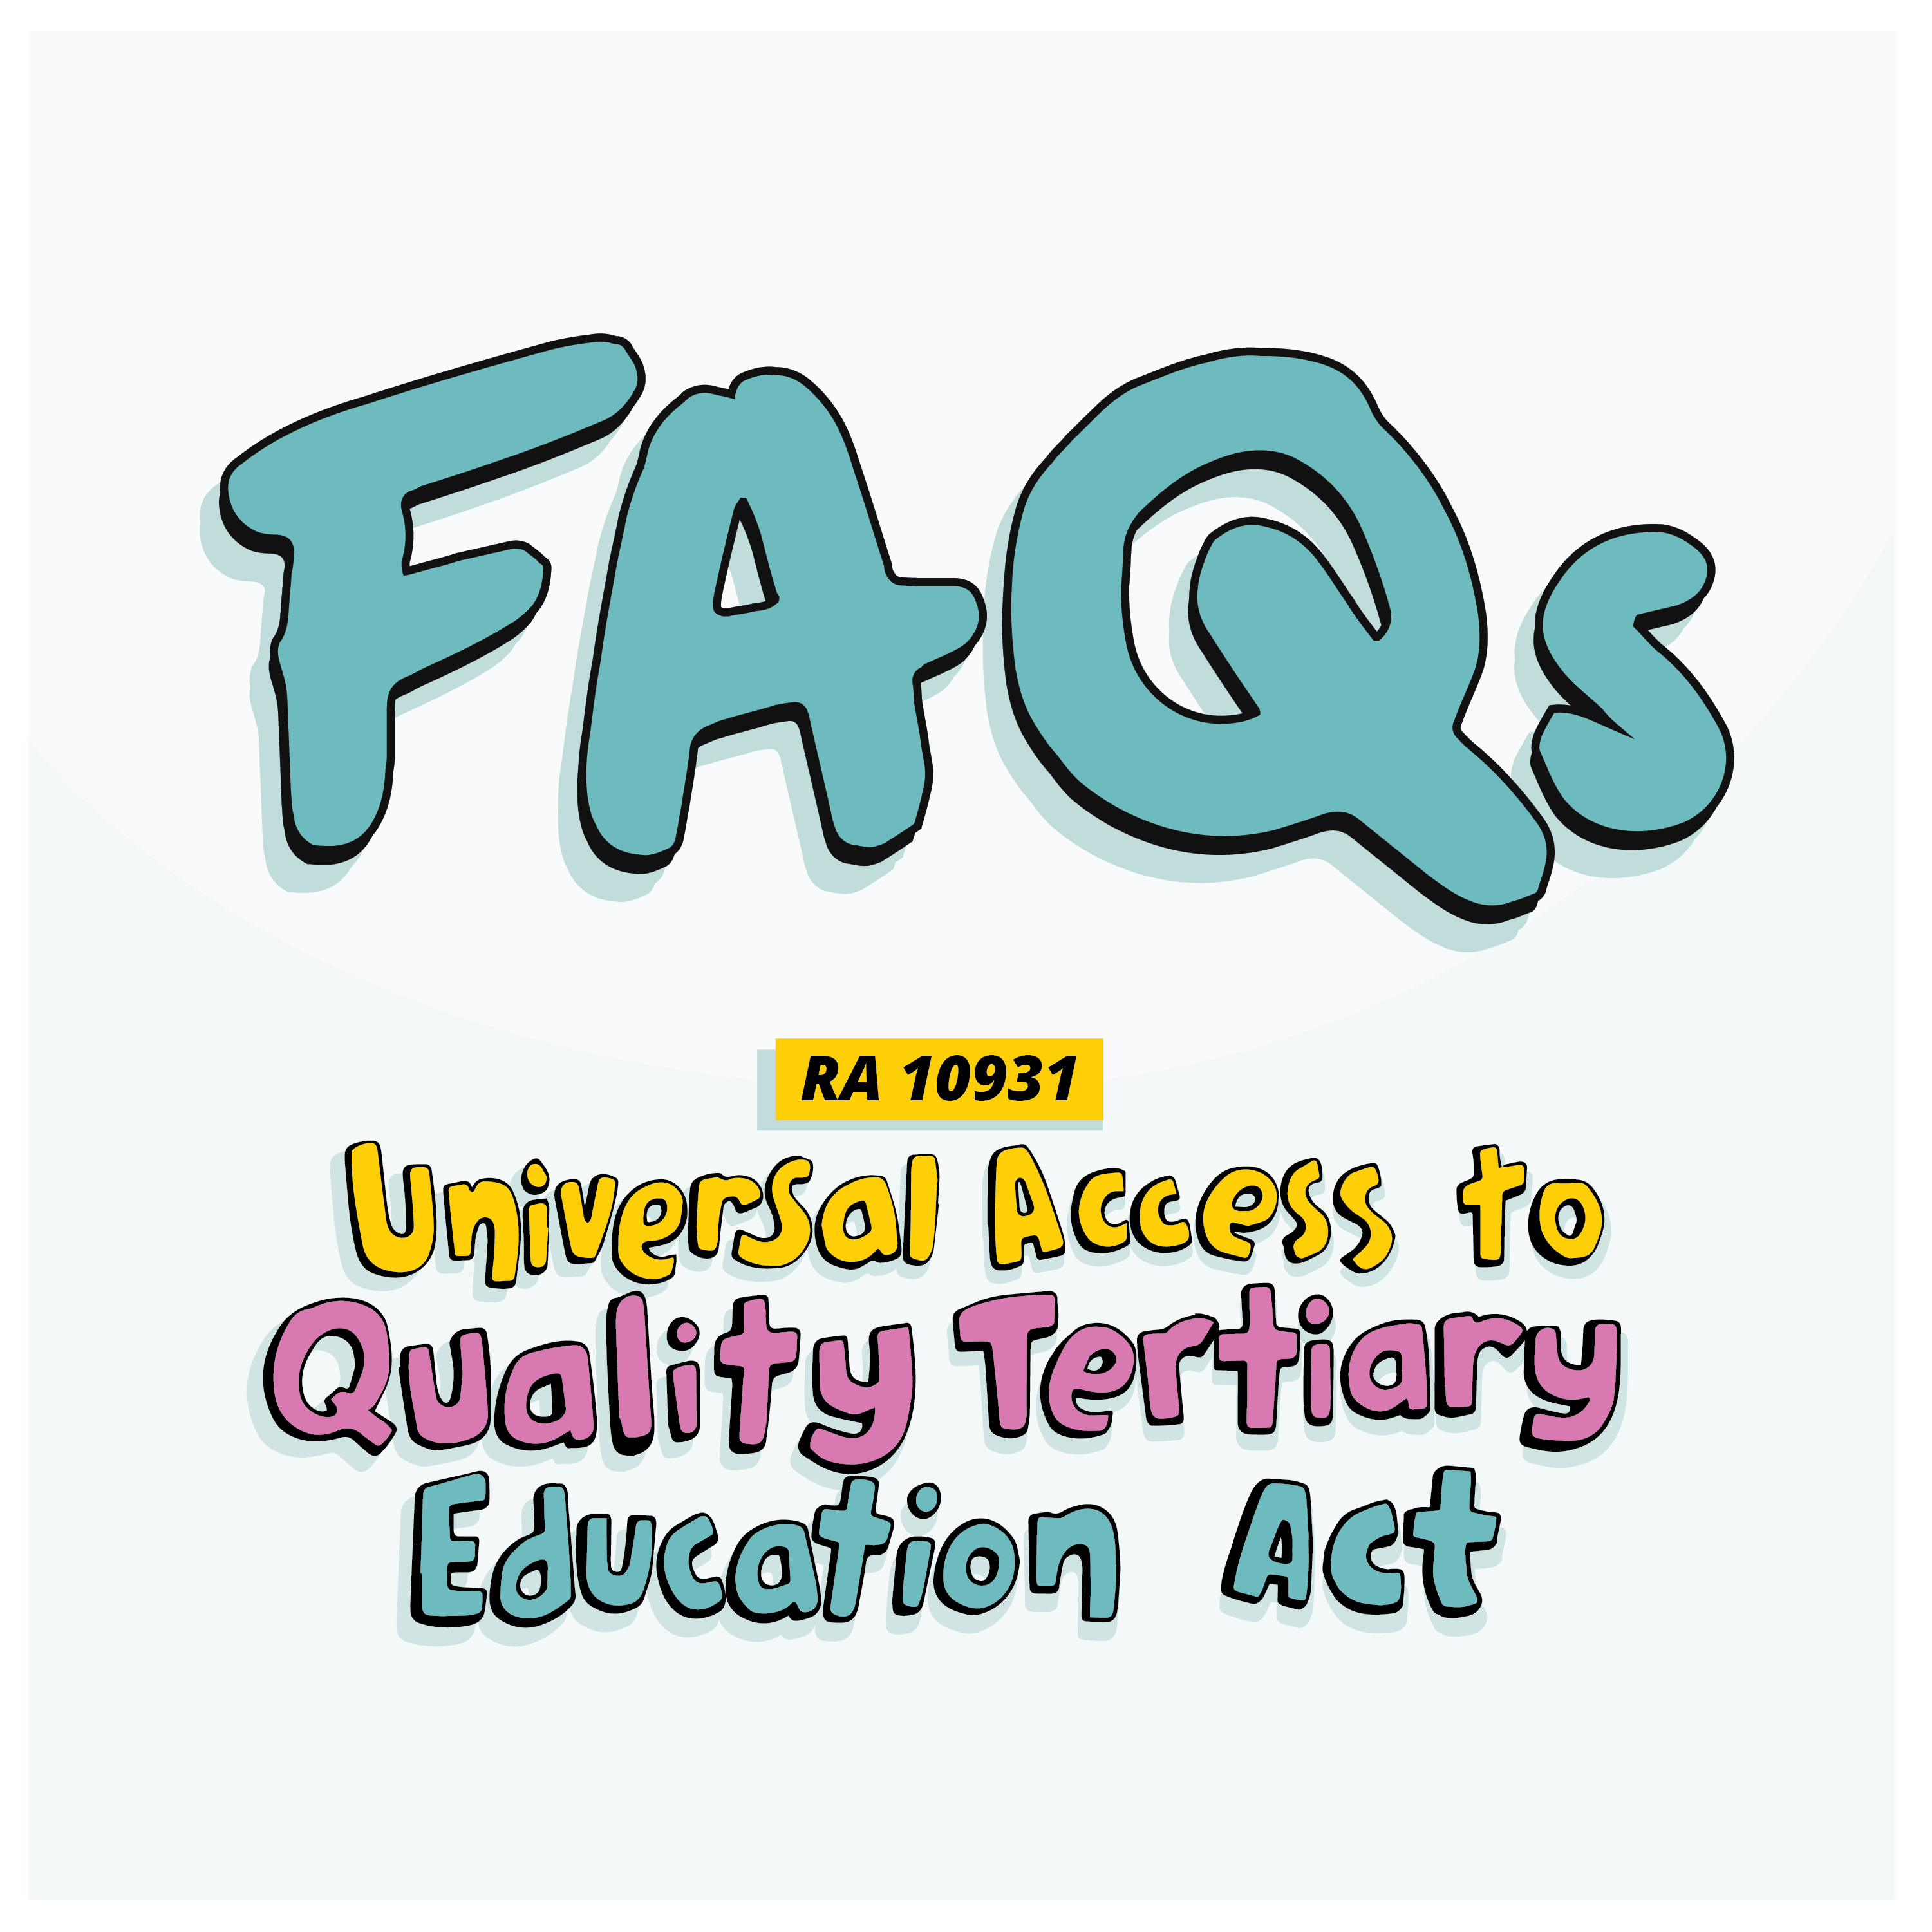 FAQs: The Universal Access to Quality Tertiary Education Act